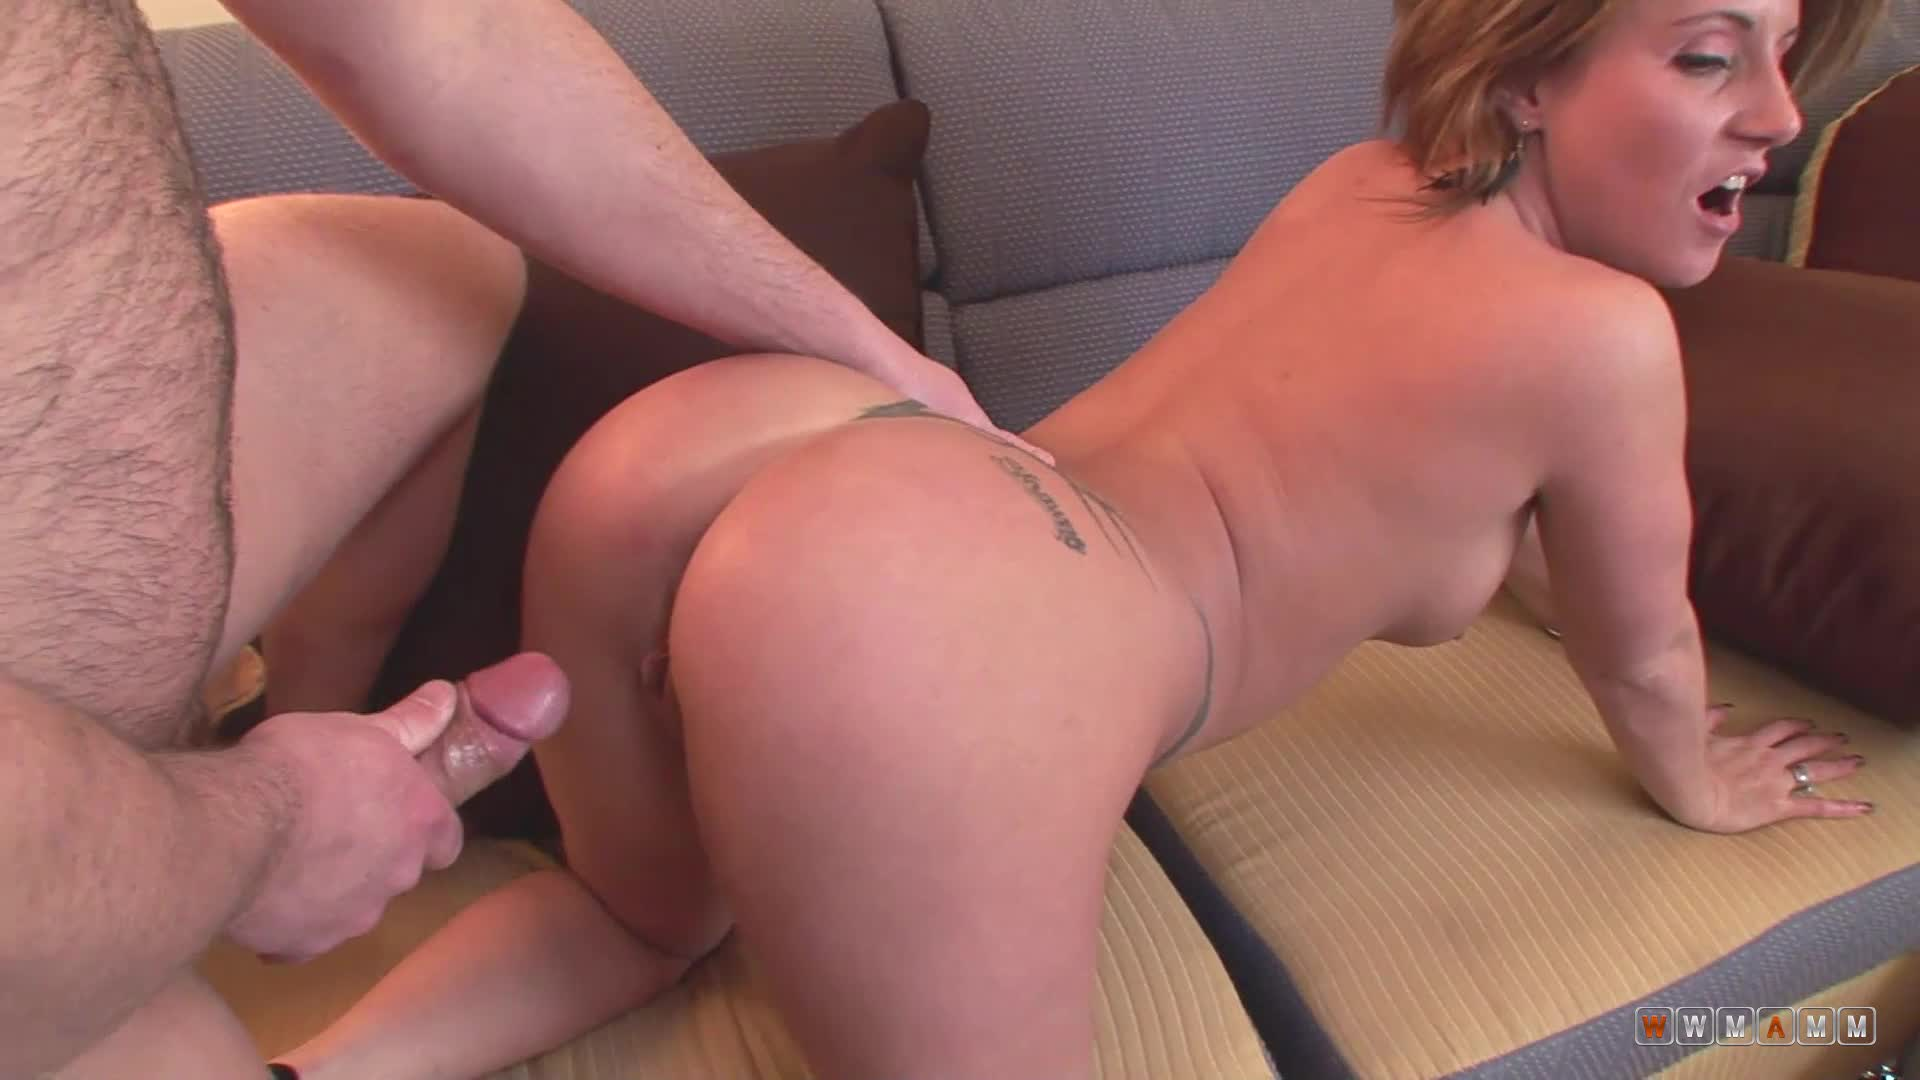 Summer Has The Perfect Wet Ass Hole For His Big Fat Cock